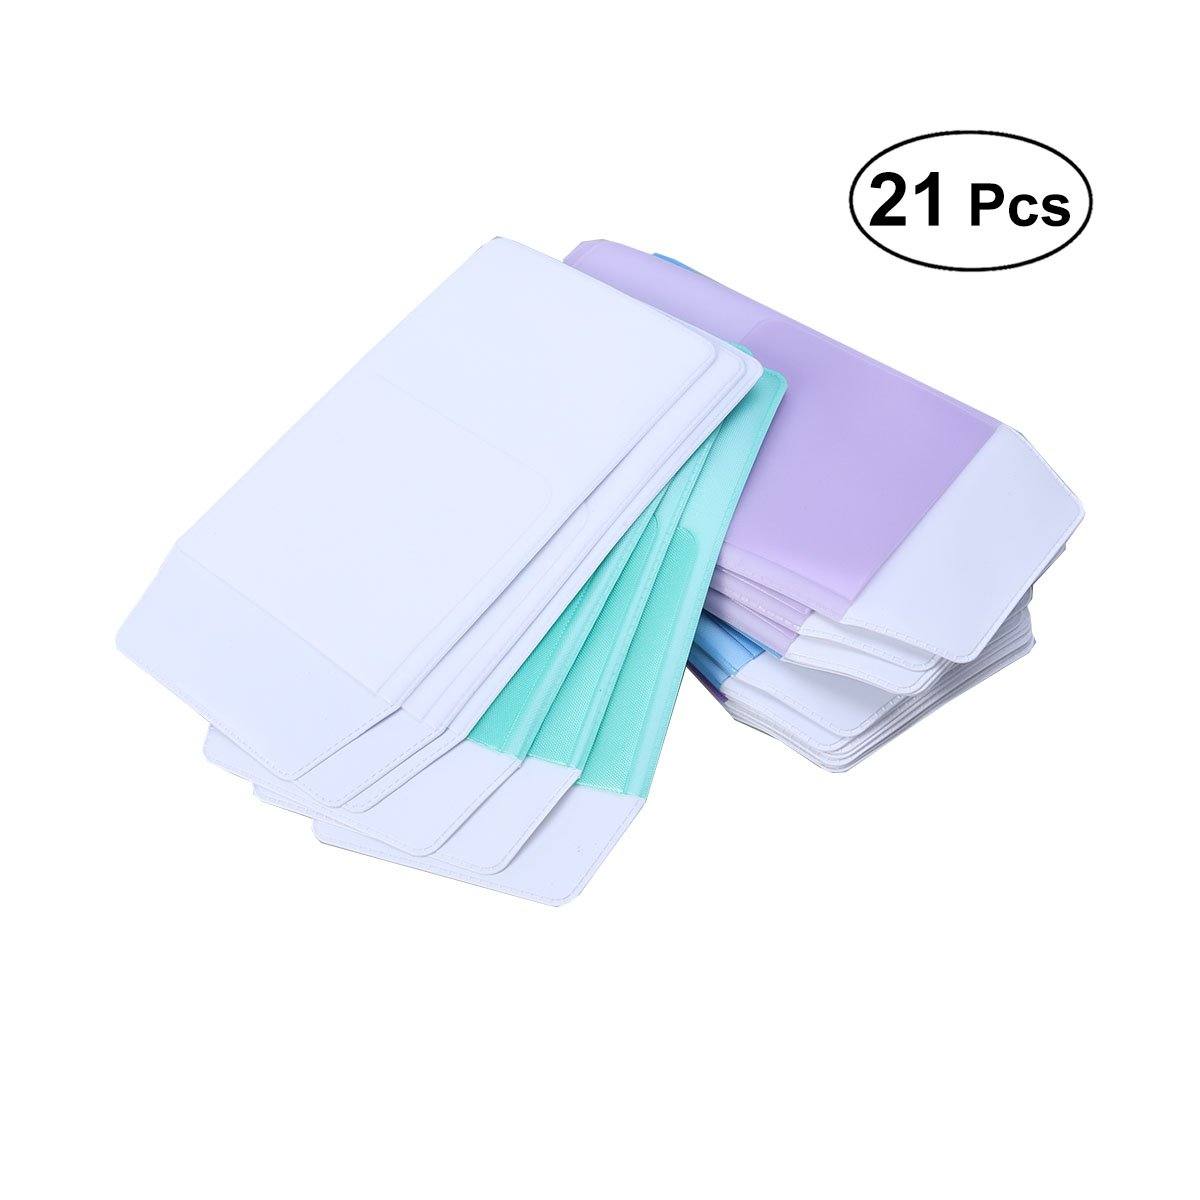 YeahiBaby 21PCS Pocket Protector for Pen Leaks for School Hospital Office (Assorted Color)